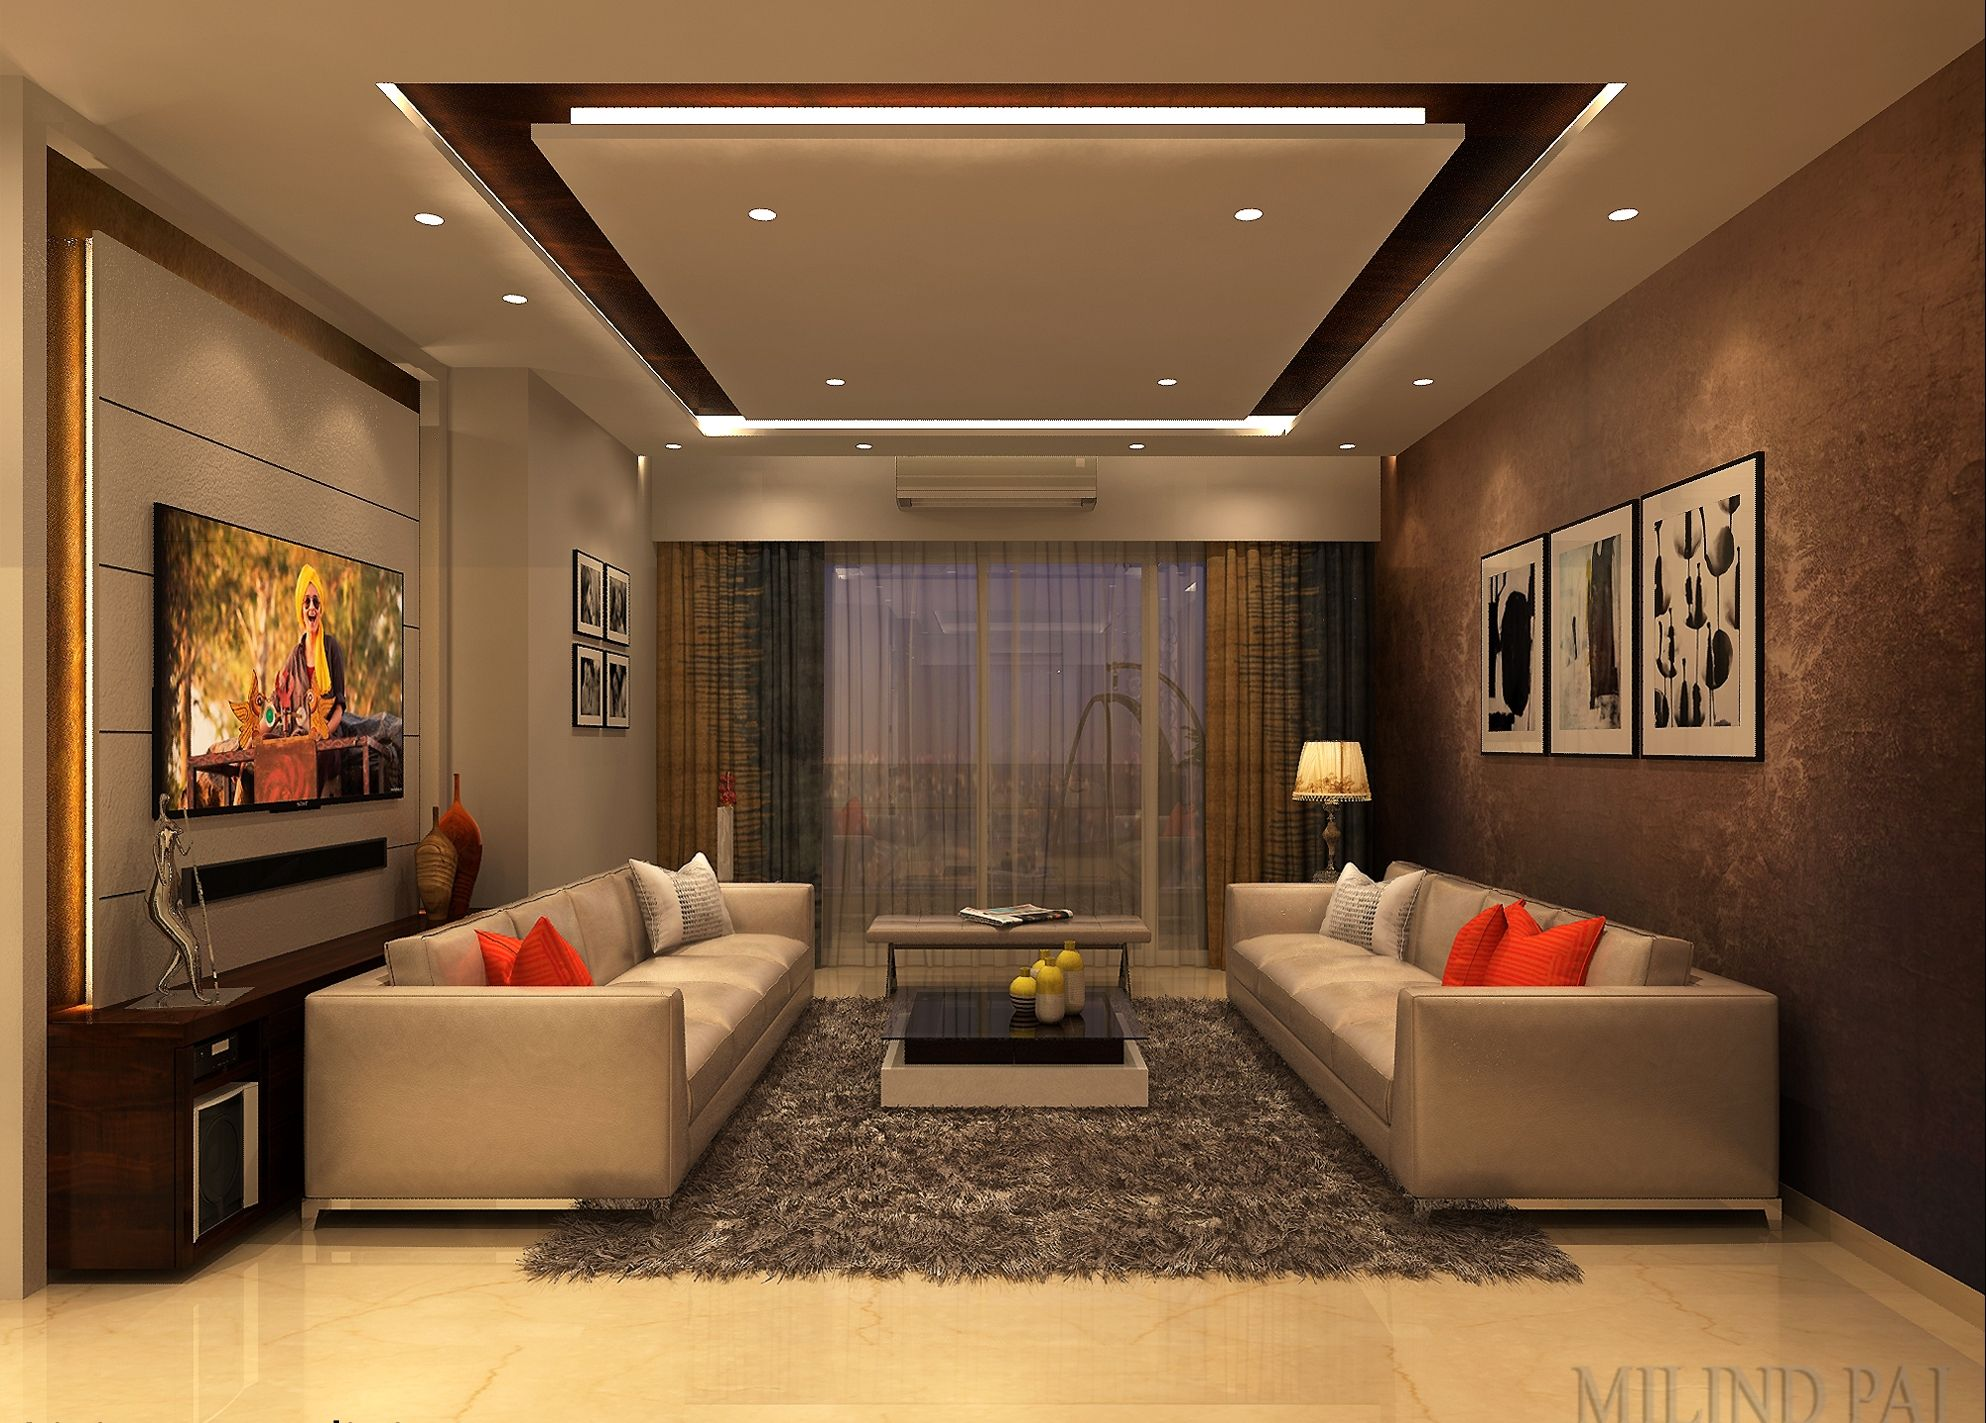 Accessorize It House Ceiling Design Ceiling Design Living Room Bedroom False Ceiling Design